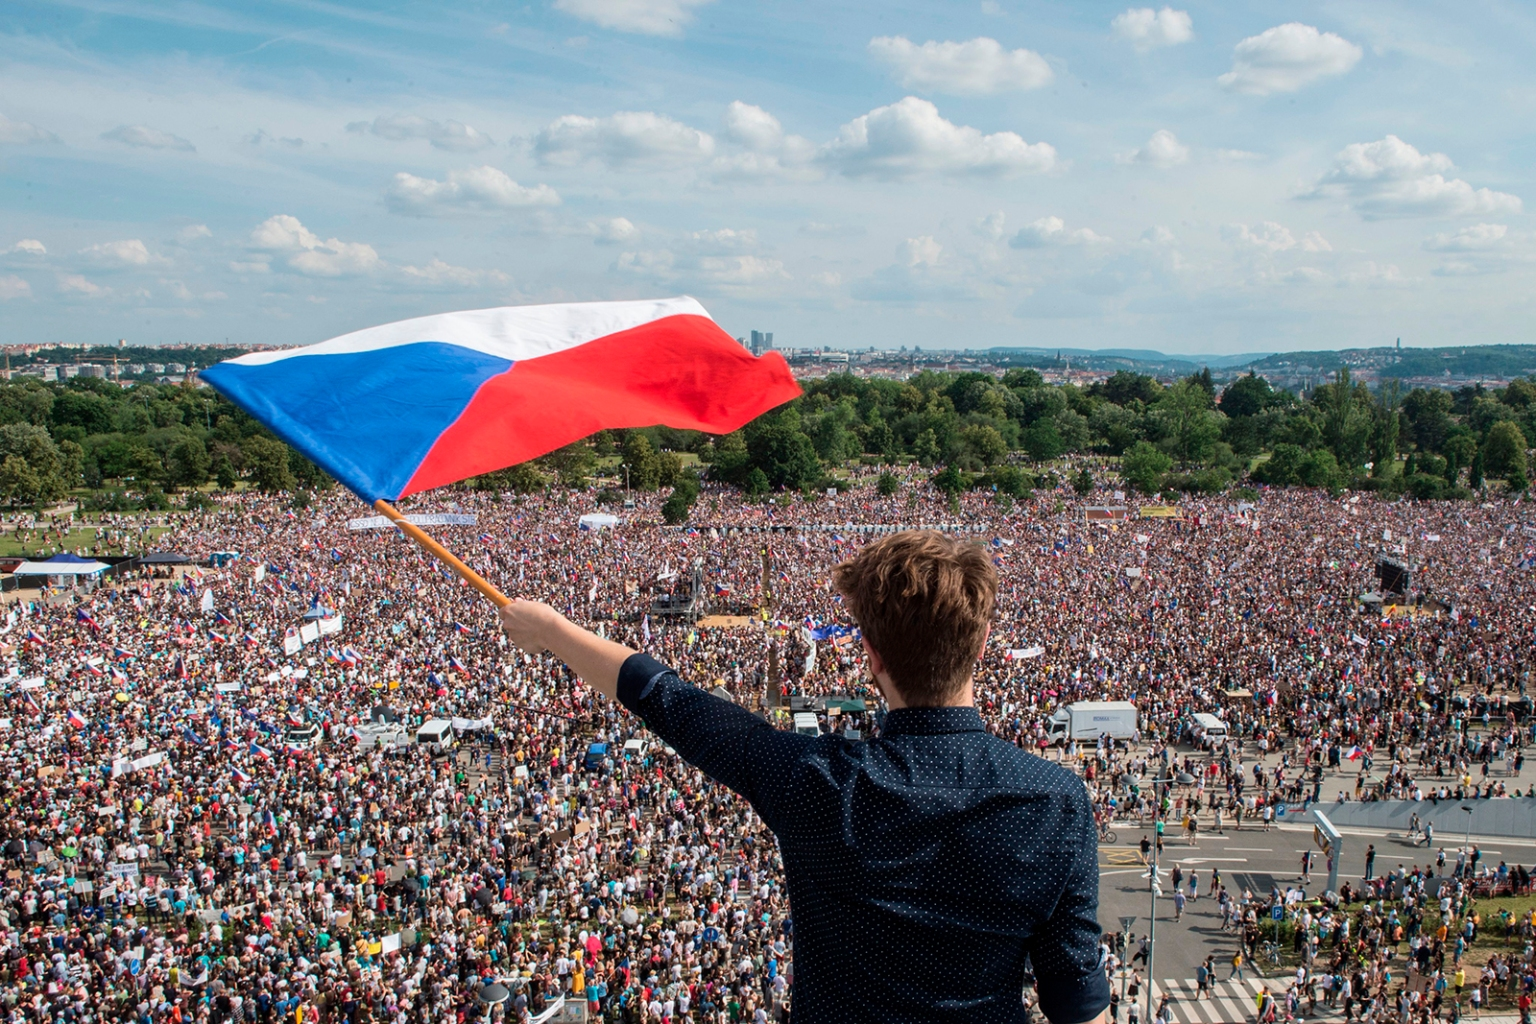 A man holds a Czech National flag during a rally demanding the resignation of Prime Minister Andrej Babis in Prague on June 23. MICHAL CIZEK/AFP/Getty Images